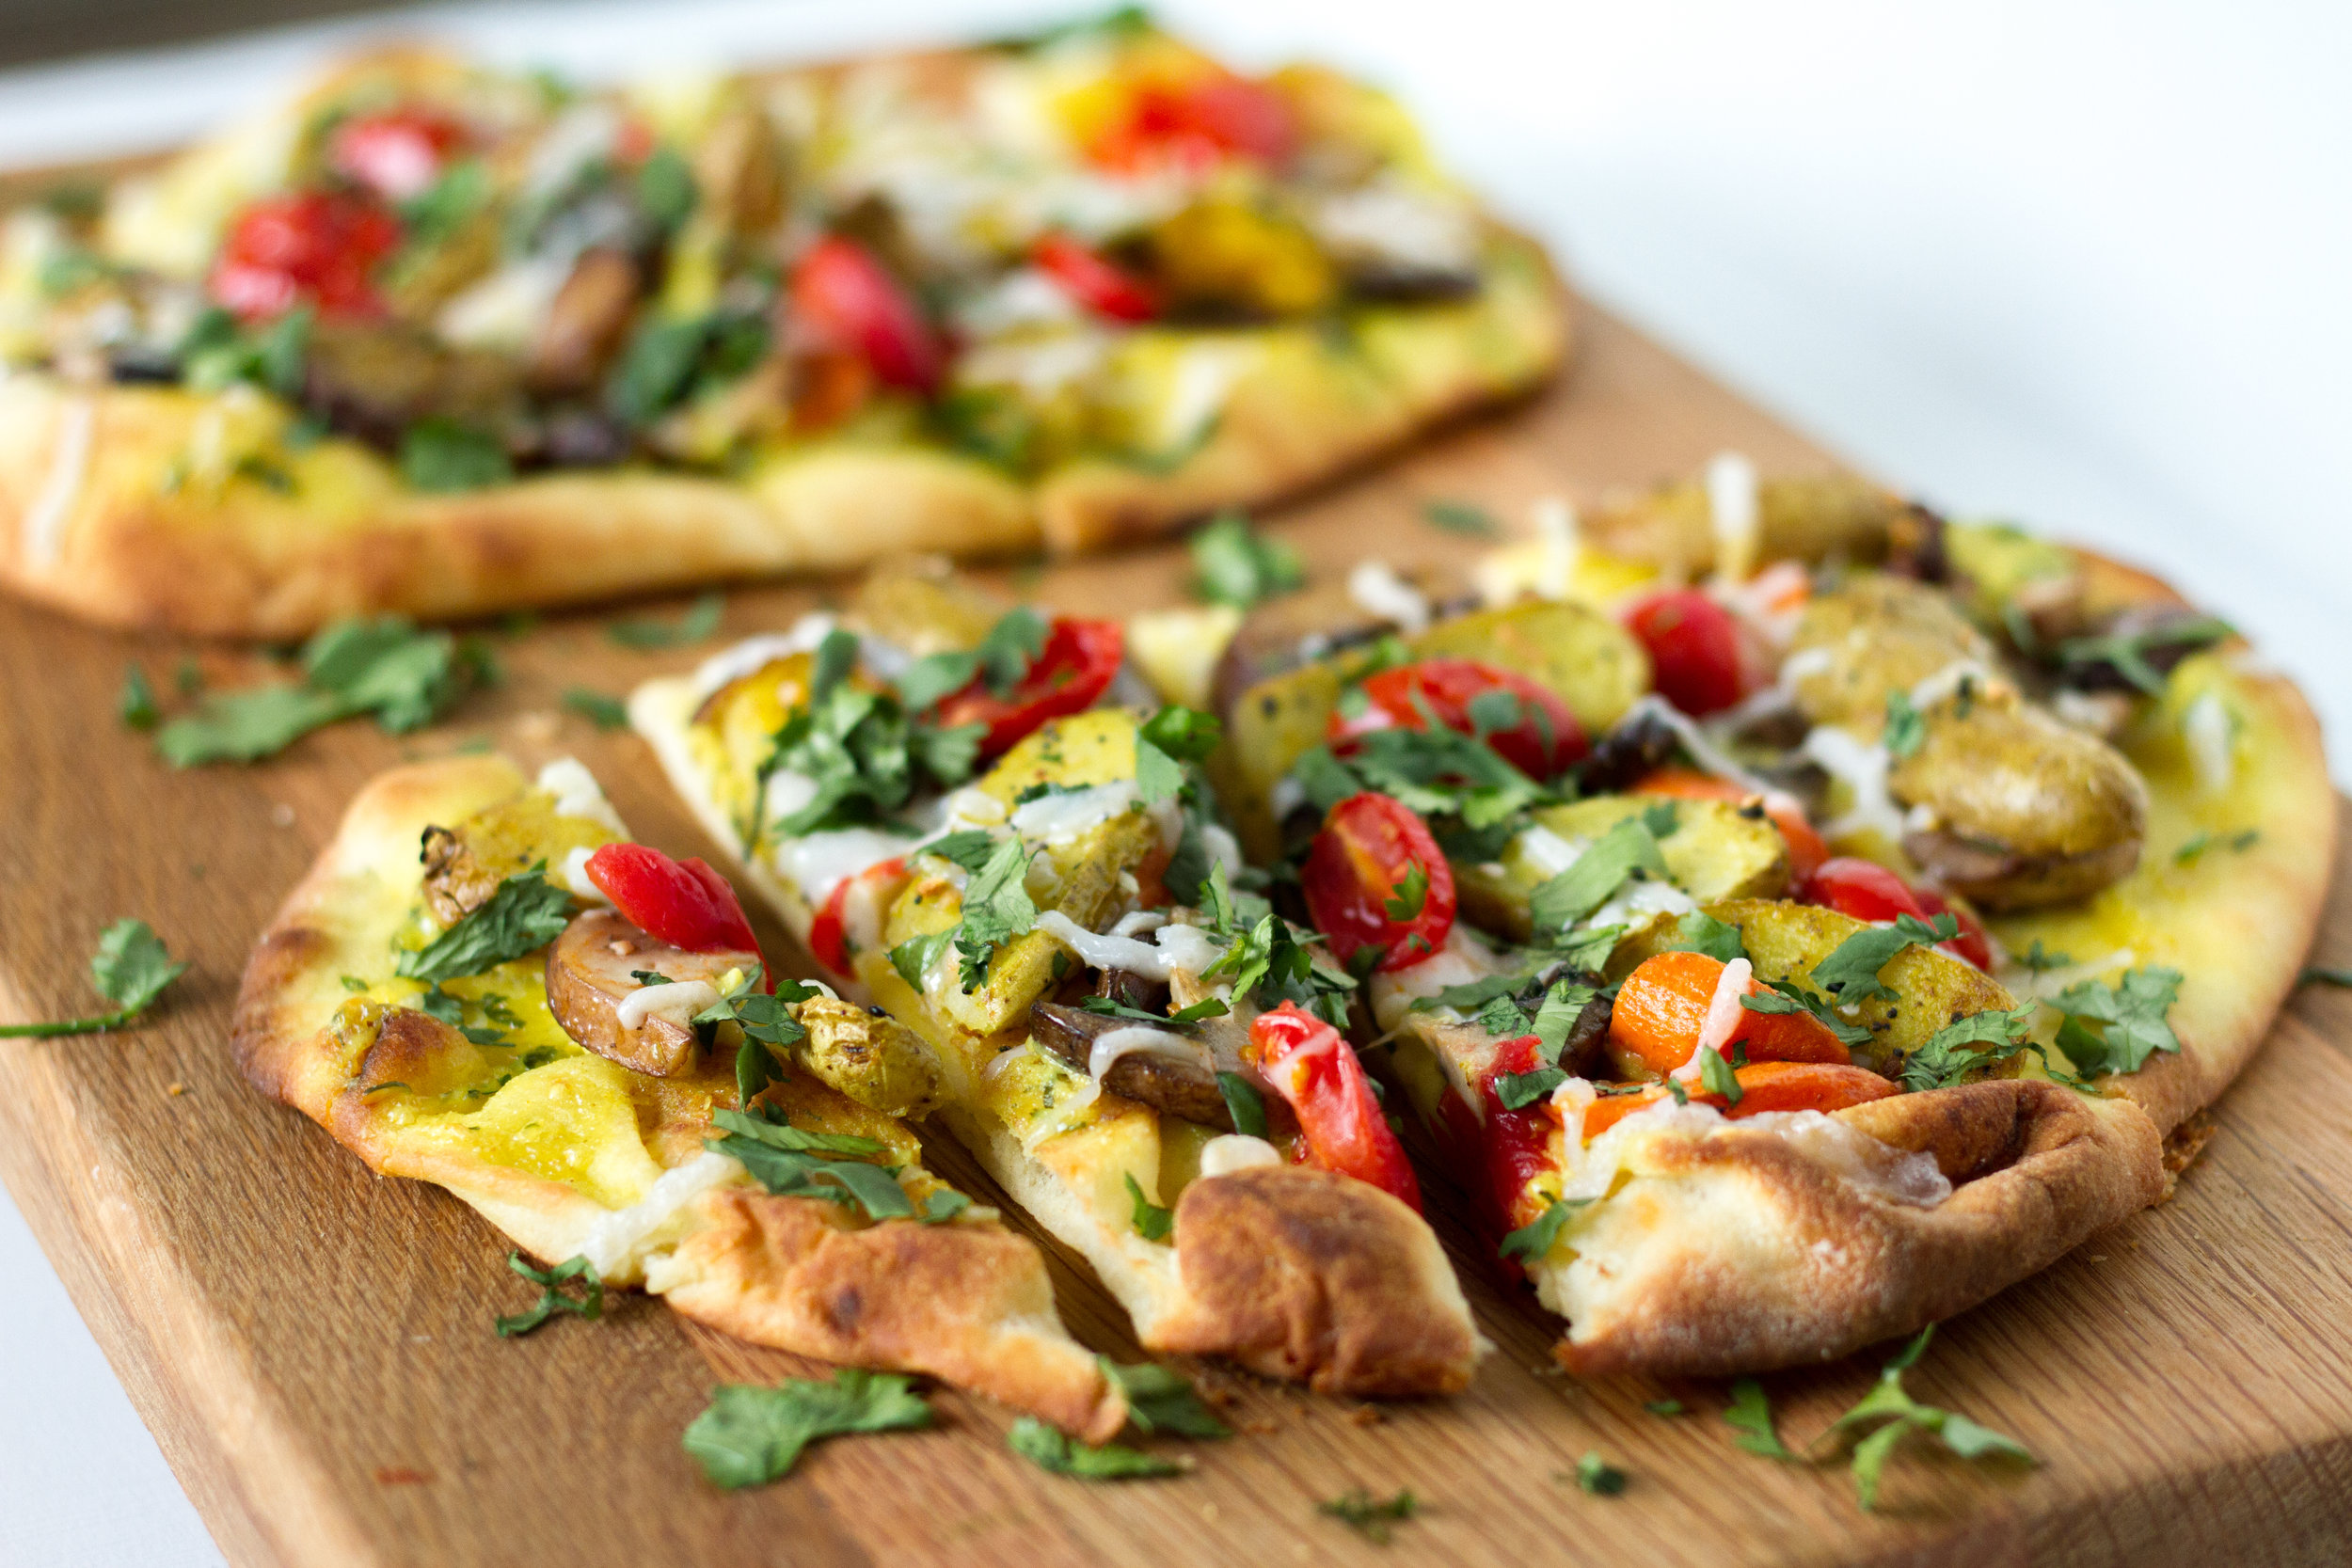 Curried Fingerling Potato and Garlic Oyster Mushroom Naan Pizza